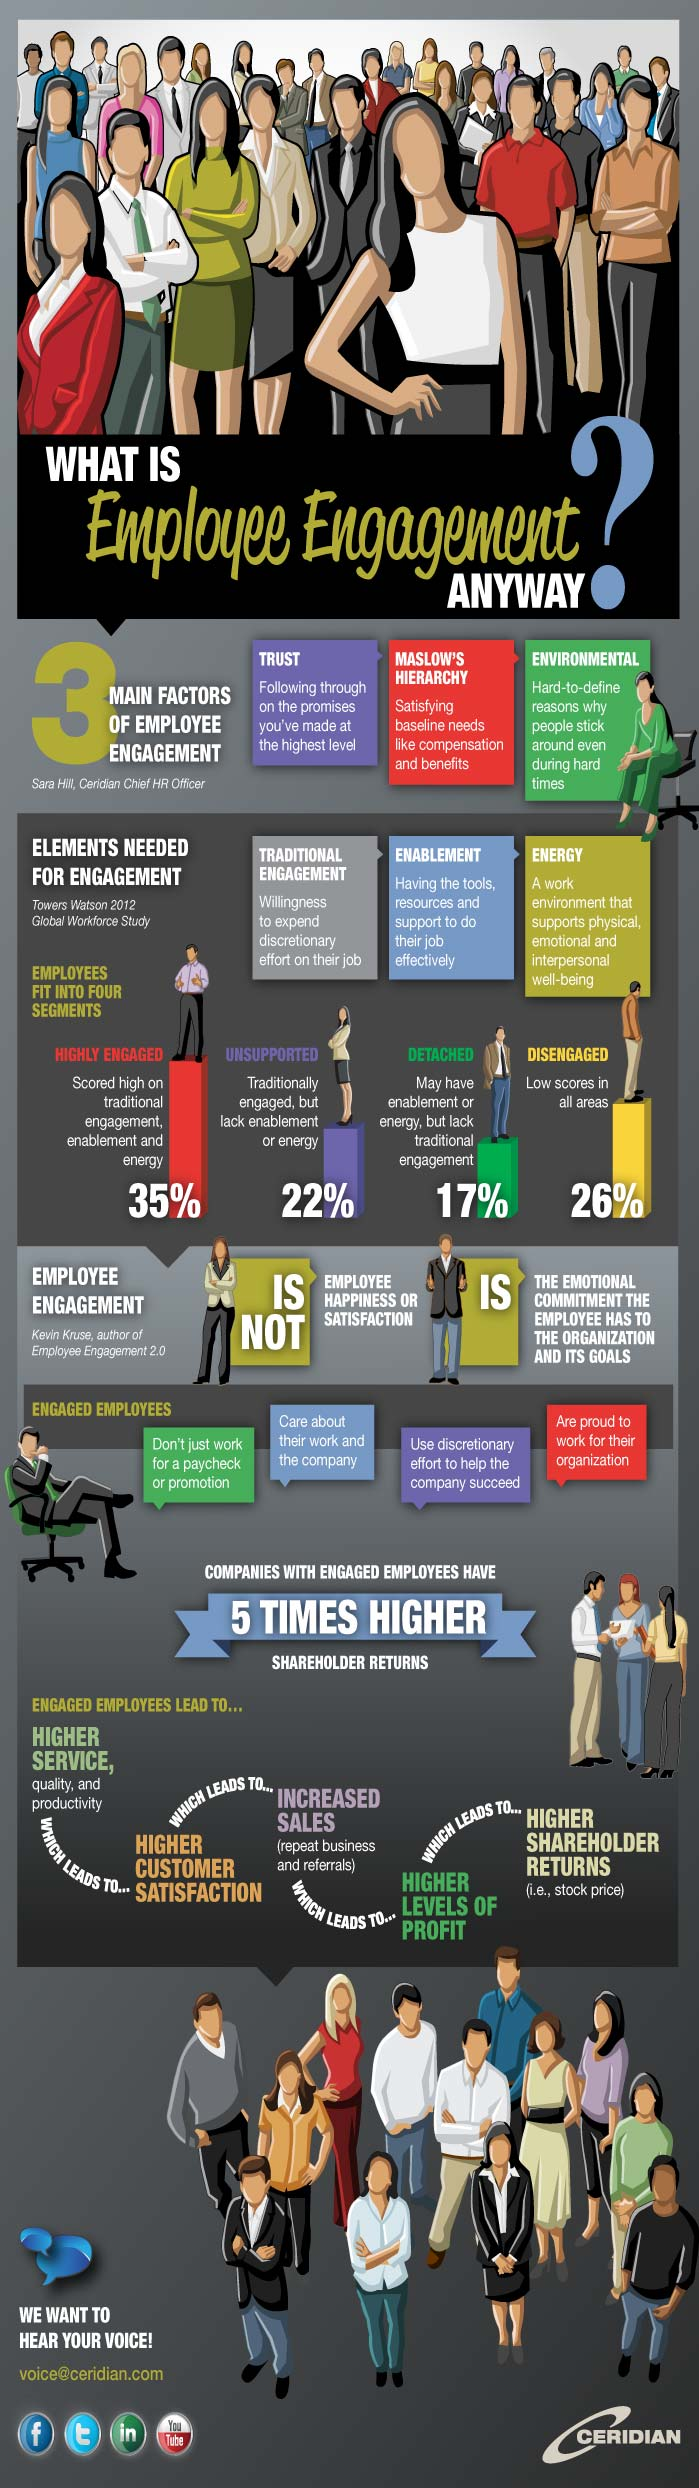 What Does Employee Engagement Mean